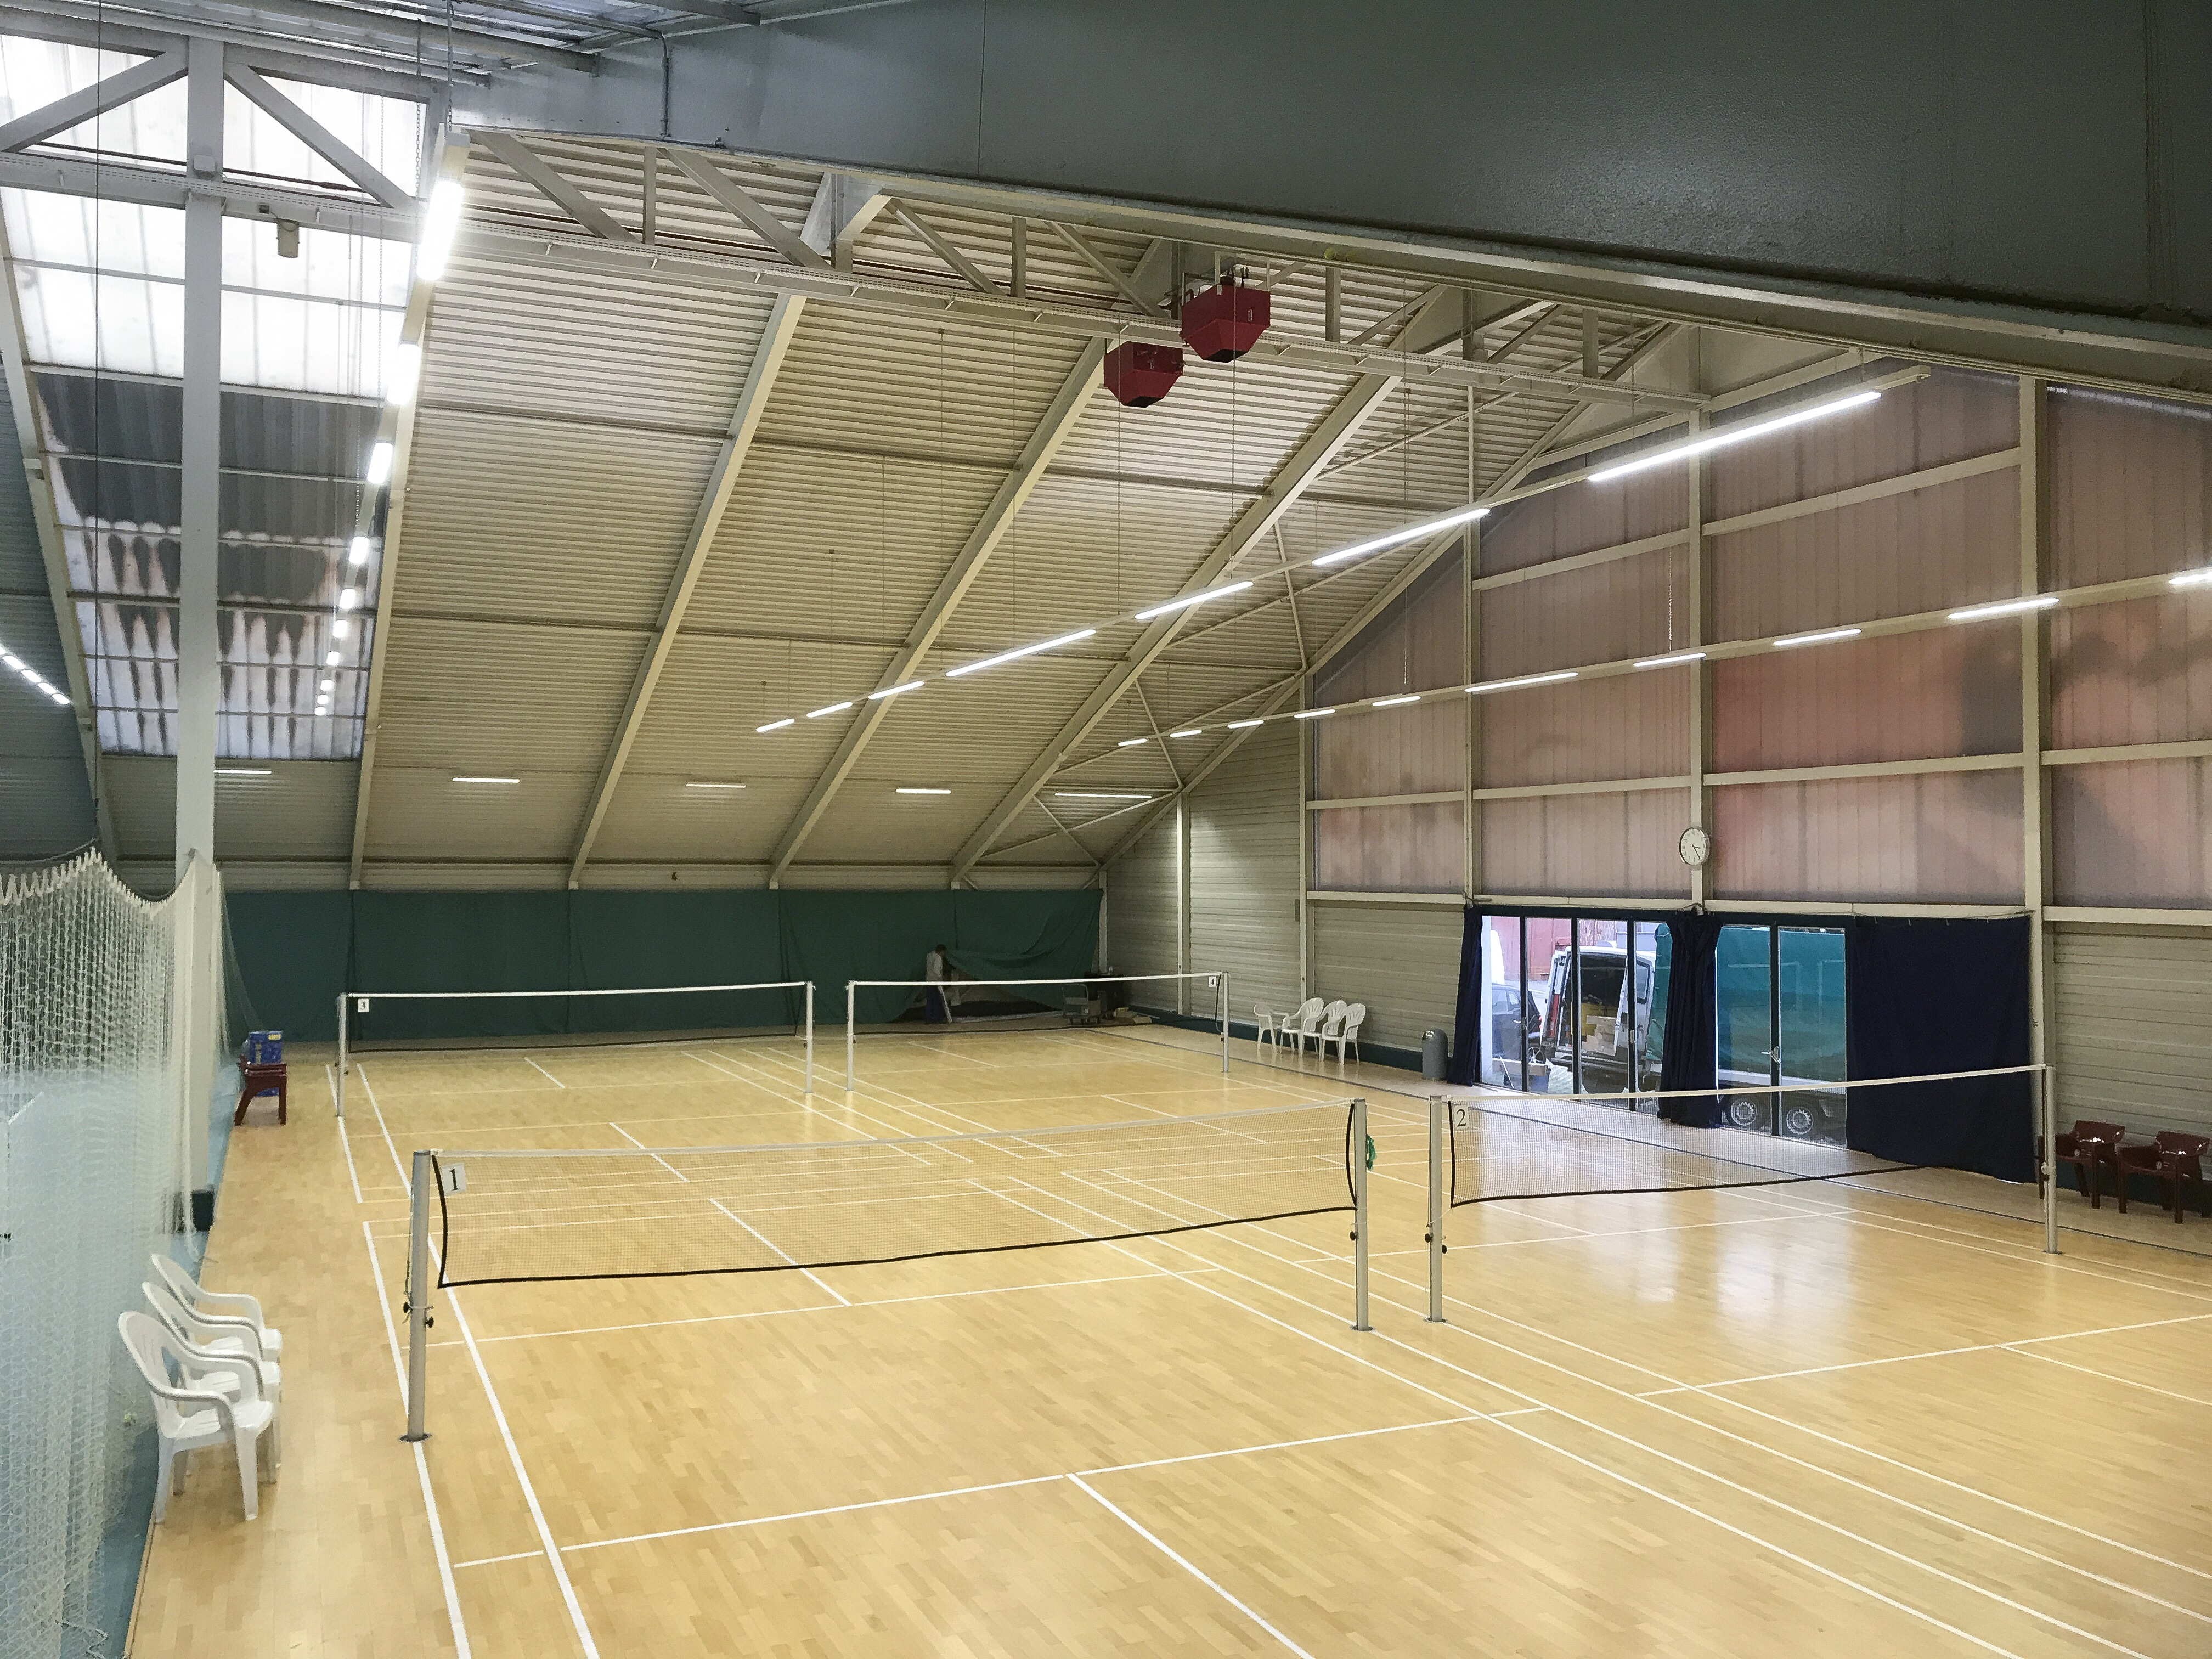 Picture of the badminton hall of the Gesundheitspark Thalwil